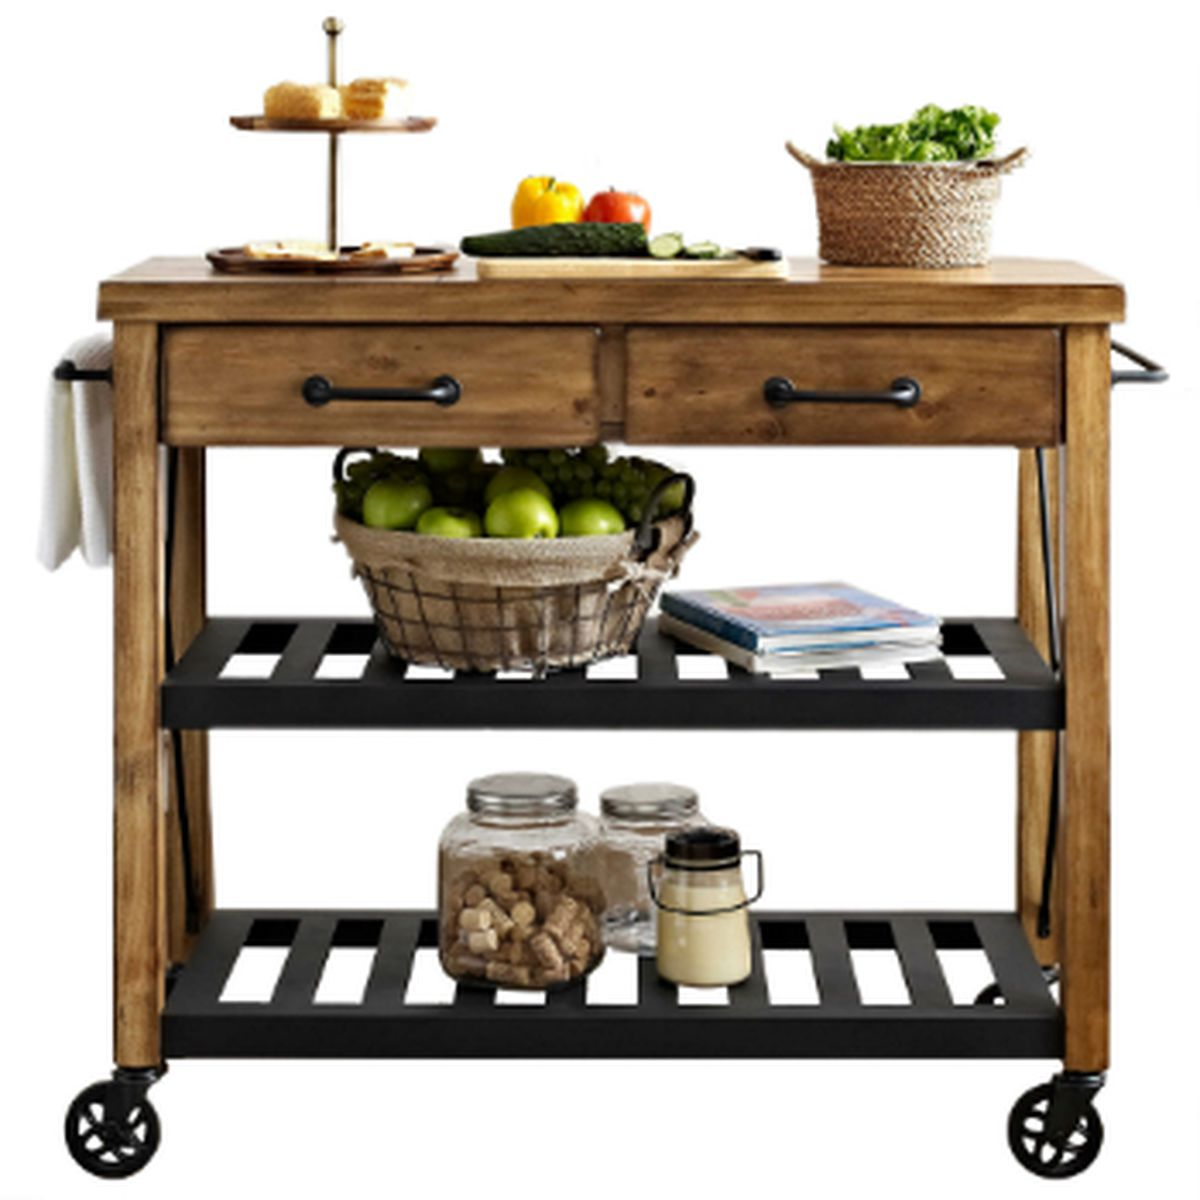 Crosley Furniture Roots Rack Natural Industrial Kitchen: 10 Ikea Essentials And Their Best Alternatives